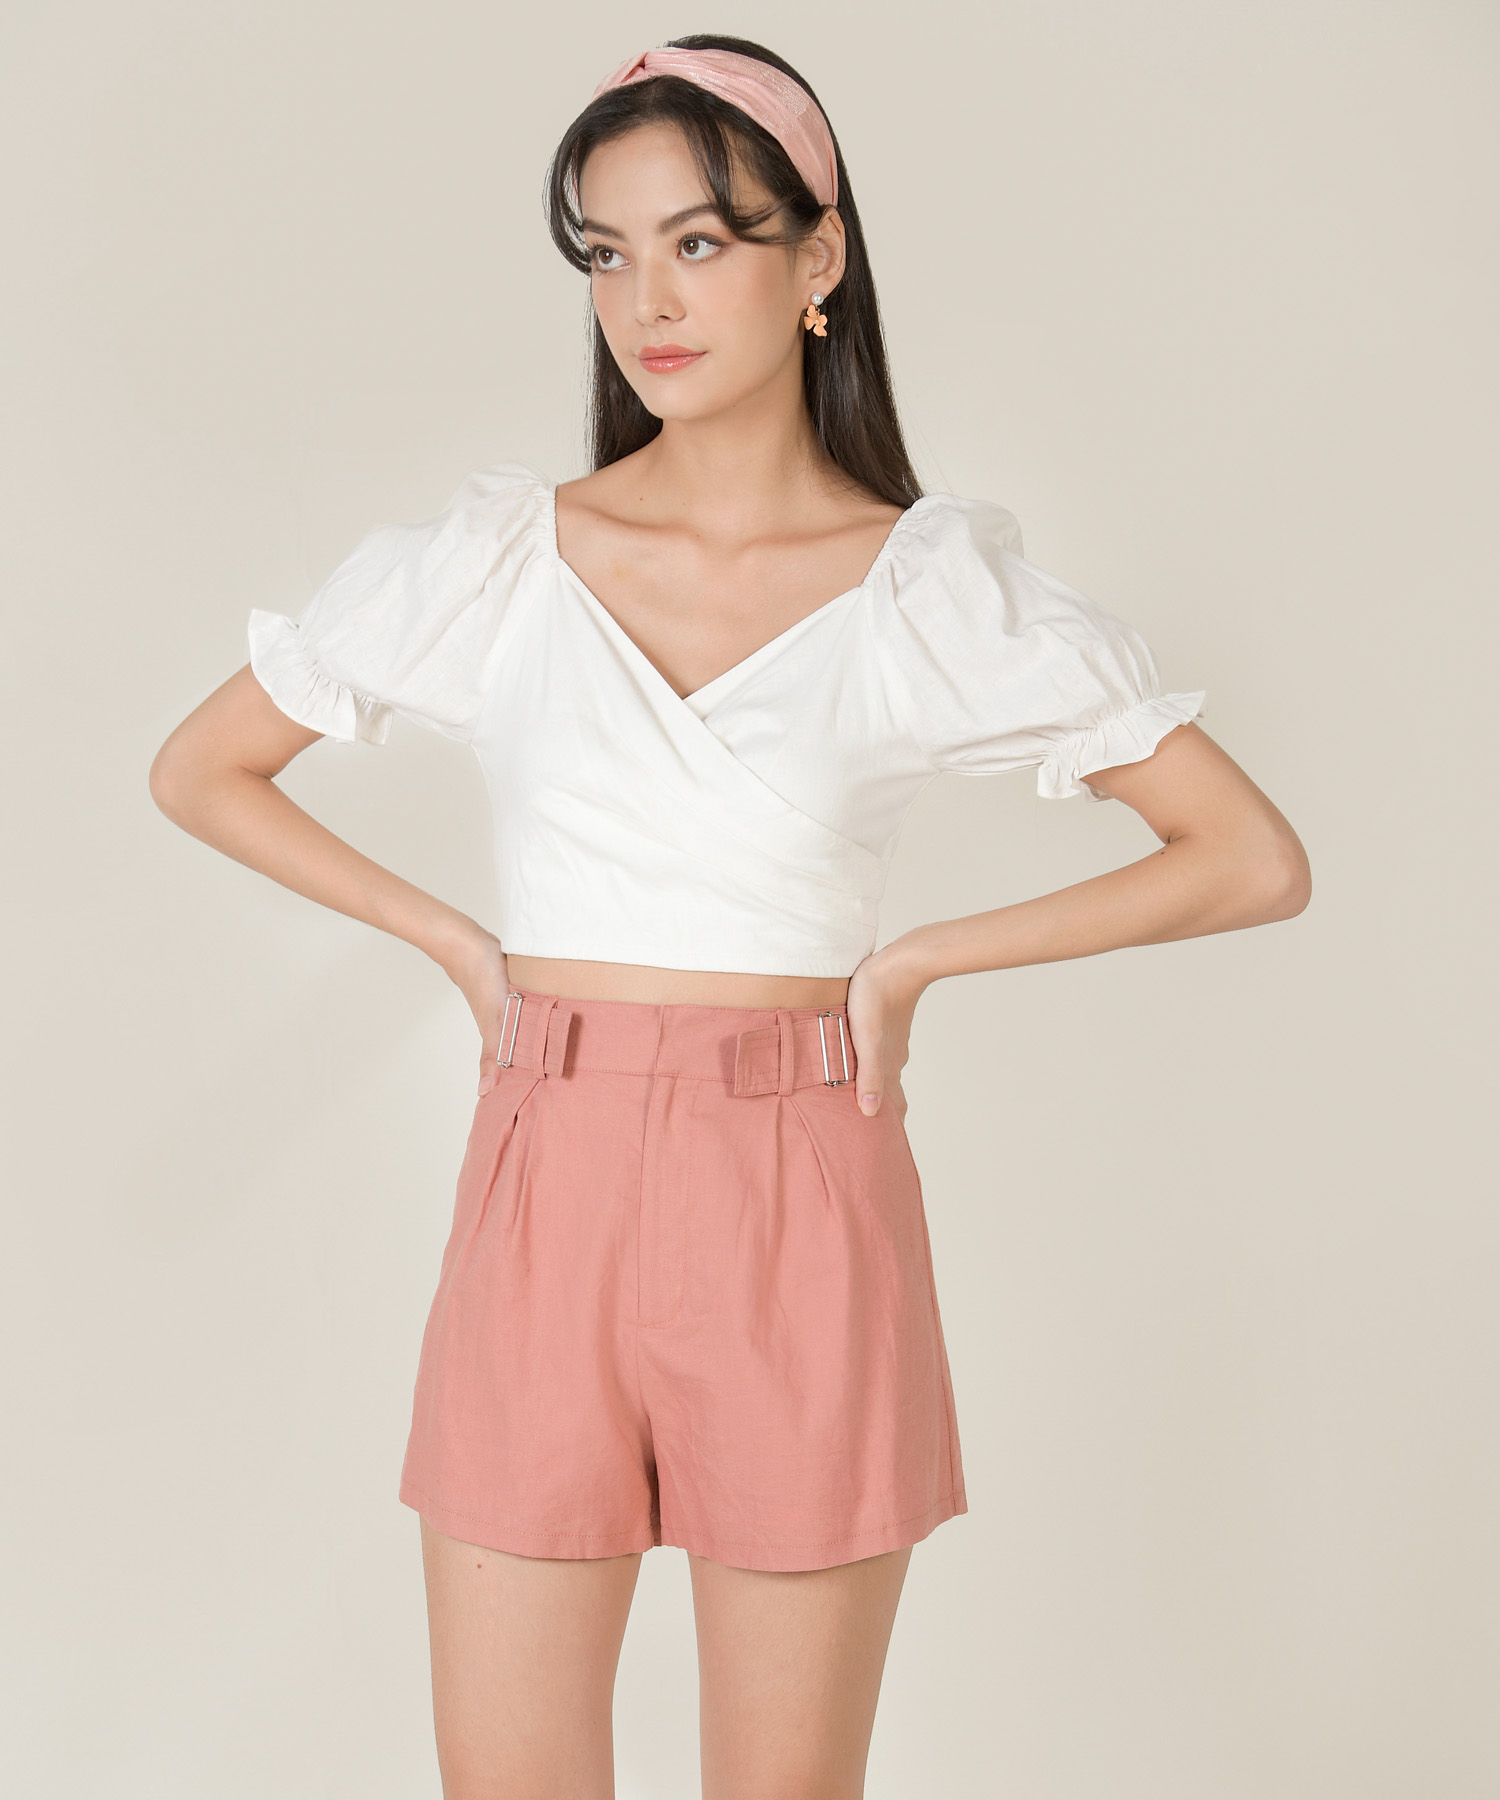 Viola linen buckle shorts in rose pink colour